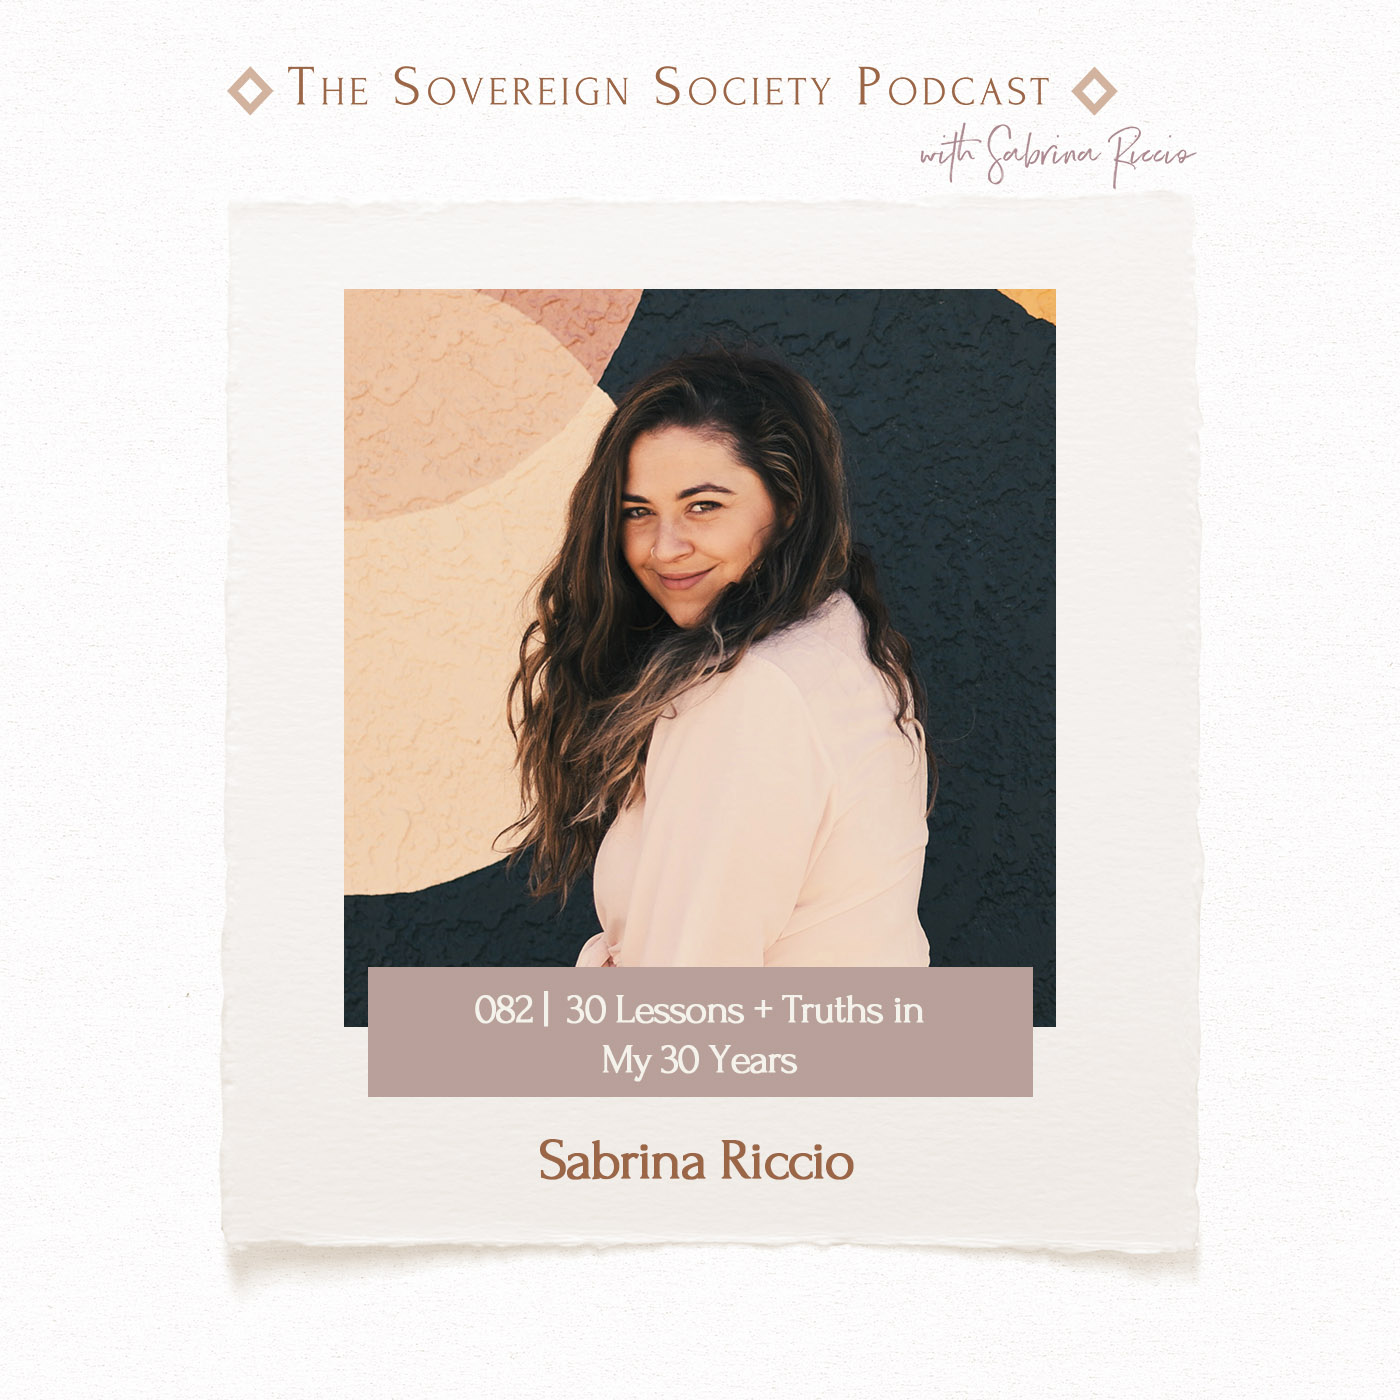 082 | 30 Lessons and Truths in My 30 Years | Sabrina Riccio